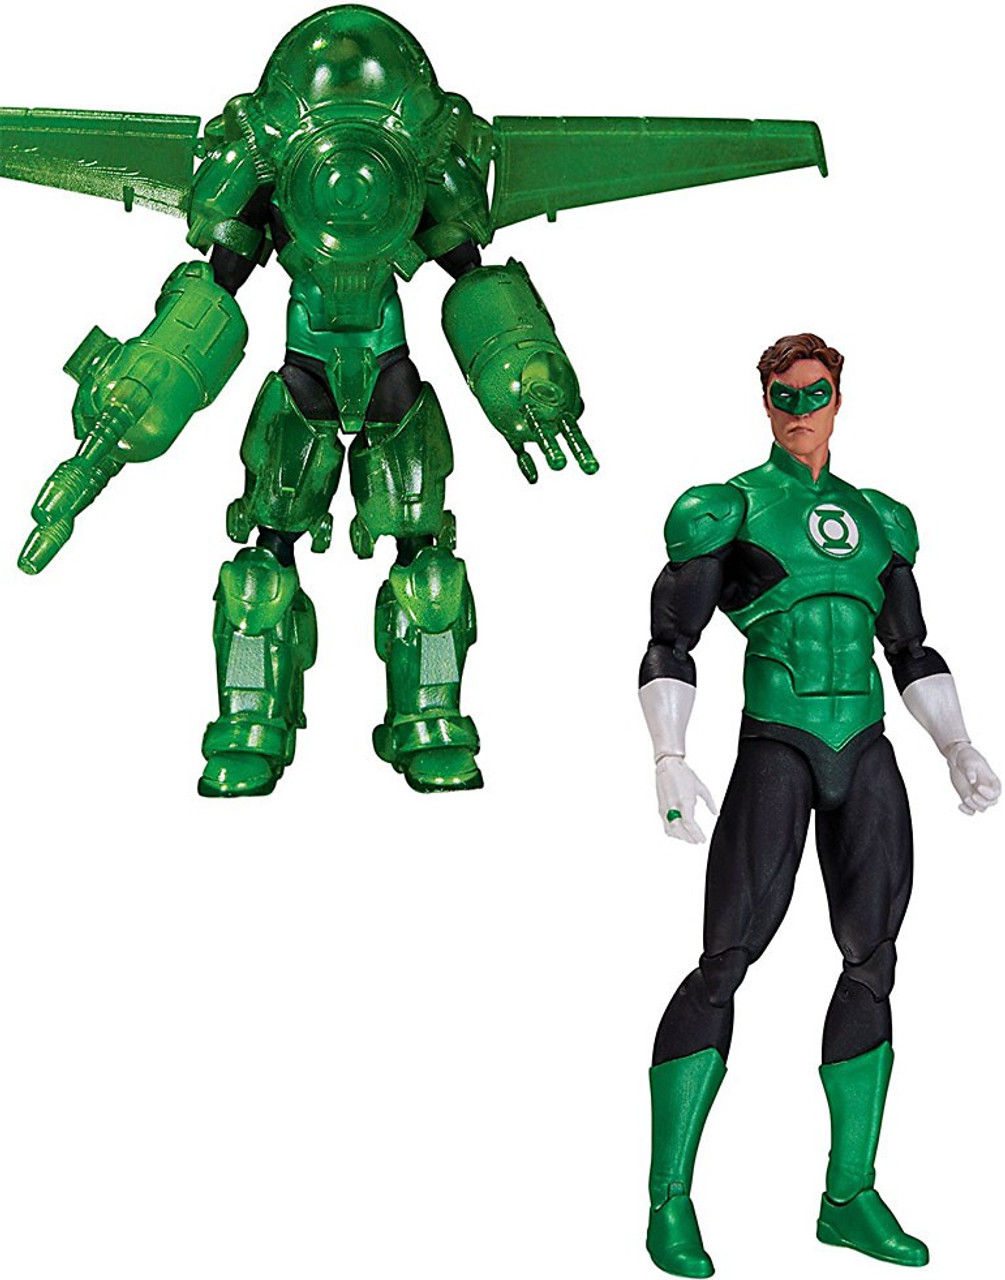 Toys For Days : Dc icons green lantern action figure collectibles